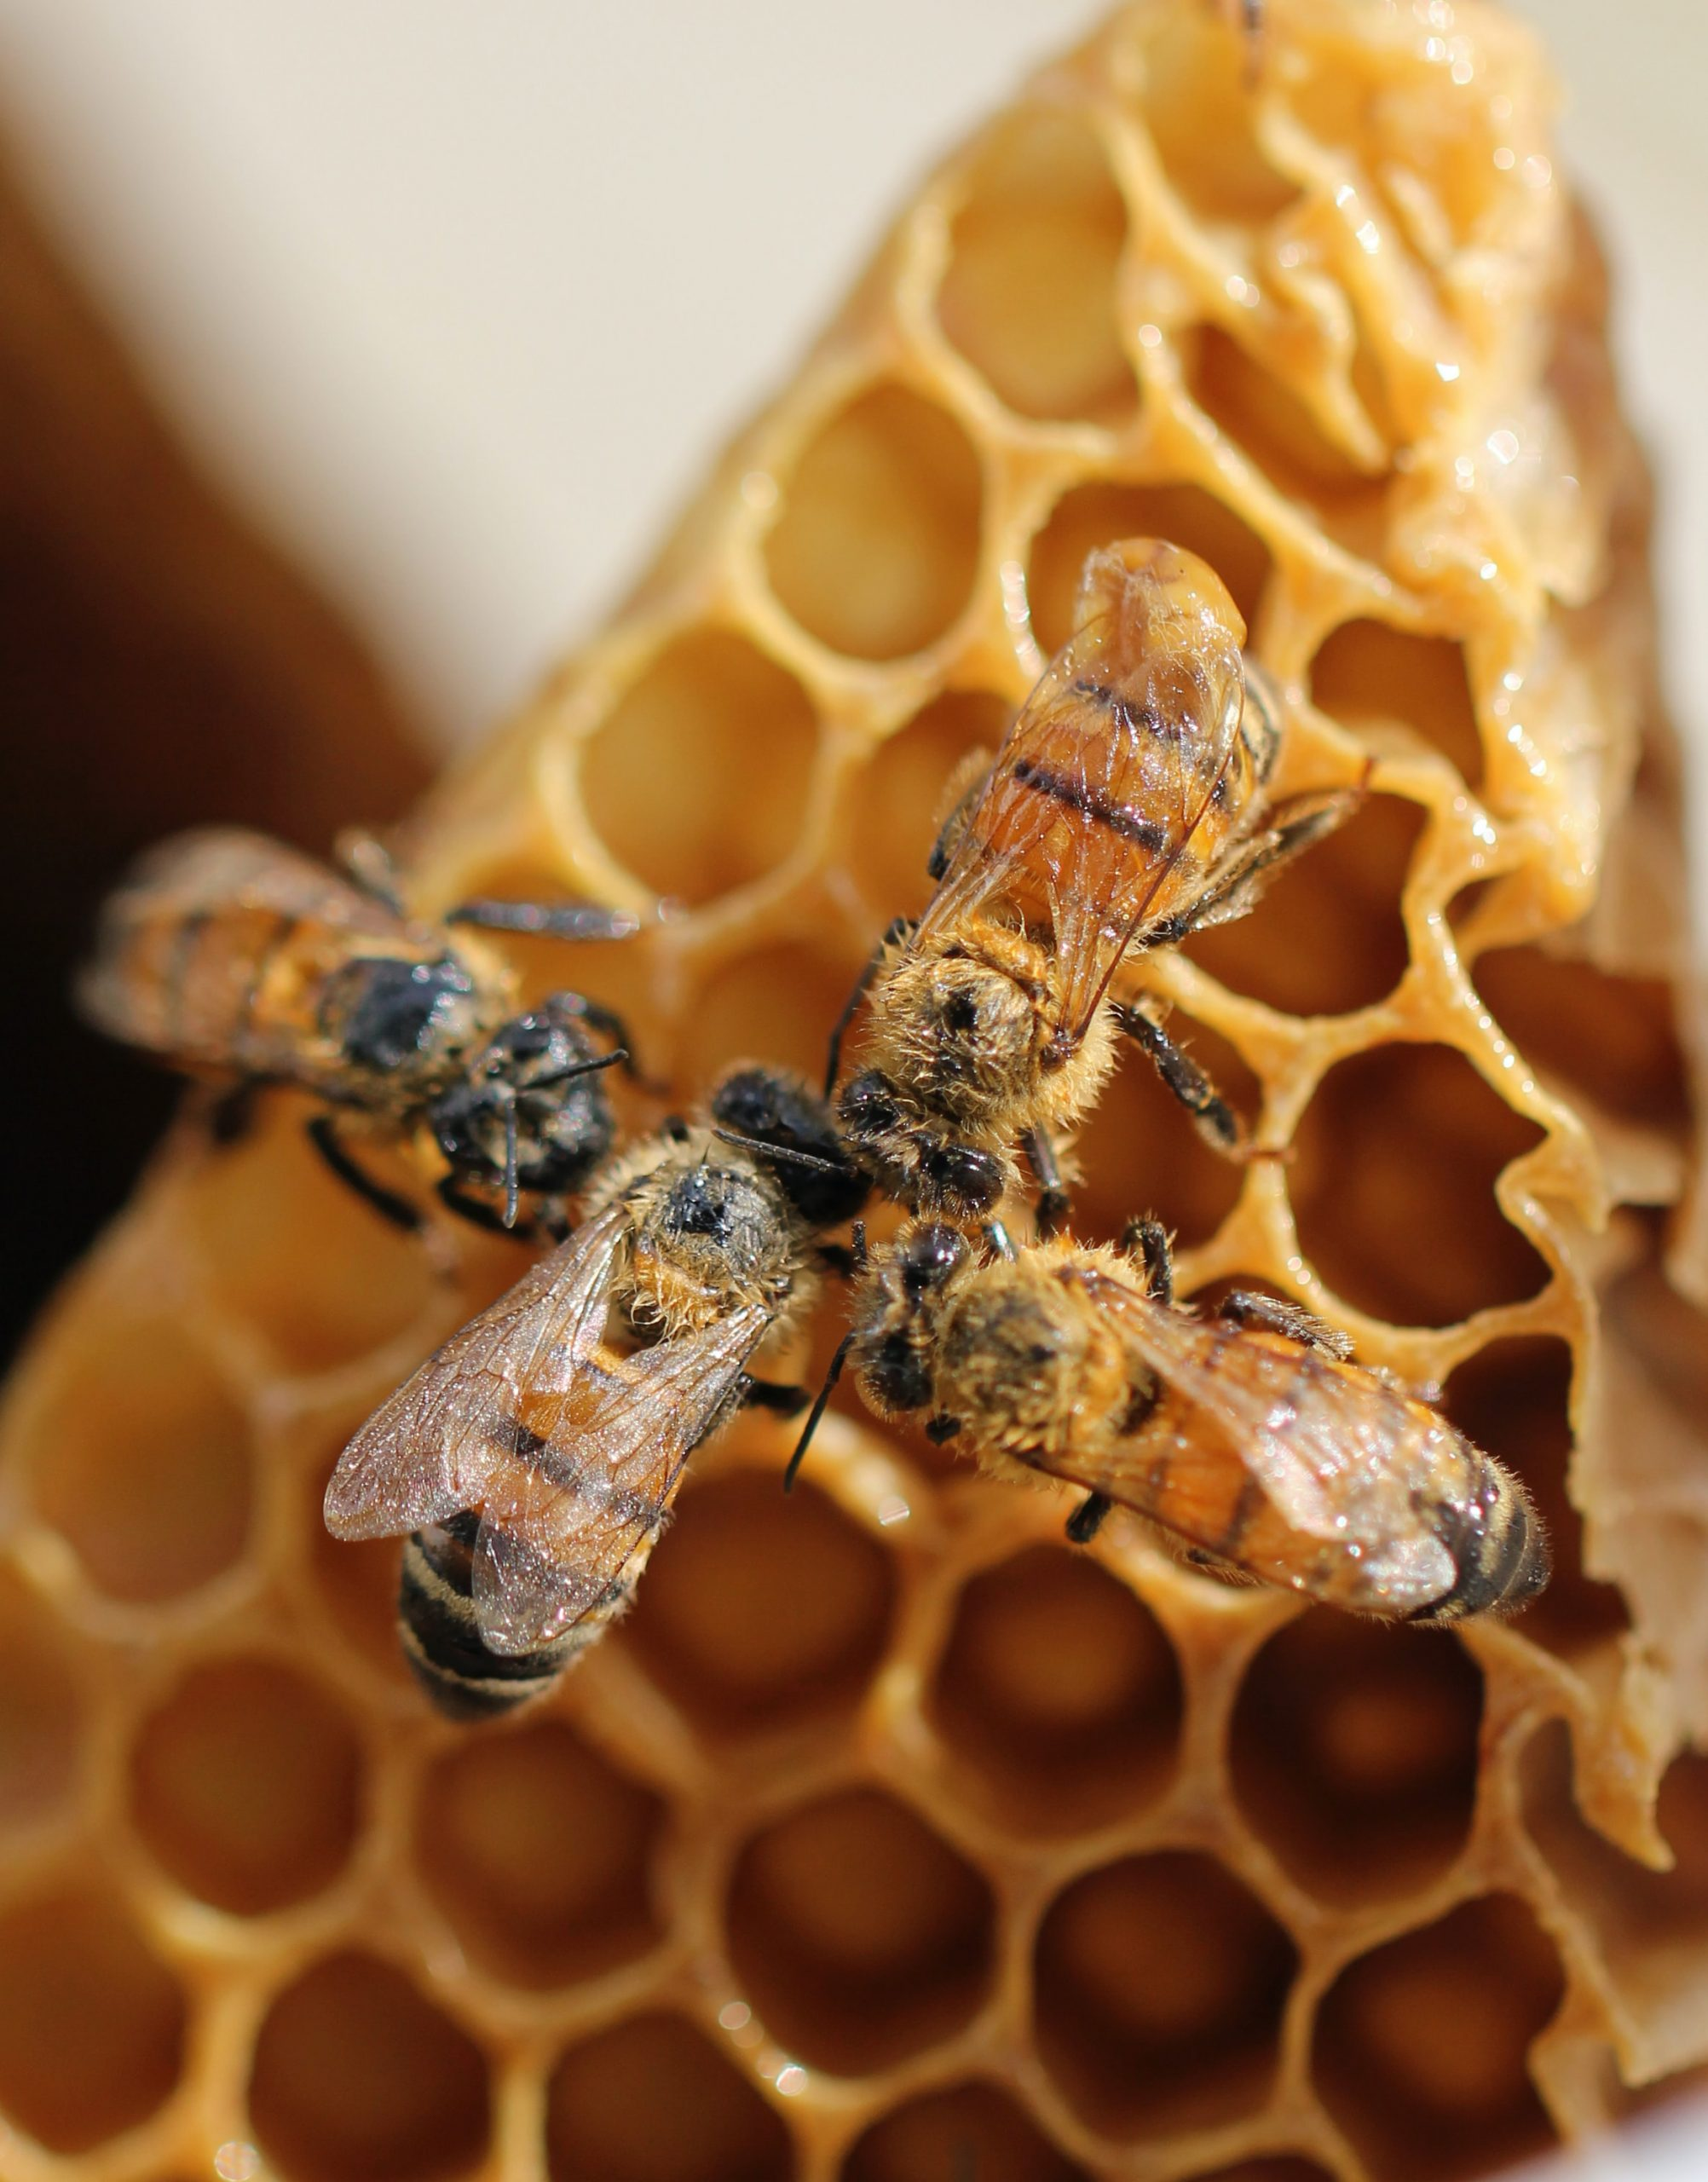 what do bees use honey for?